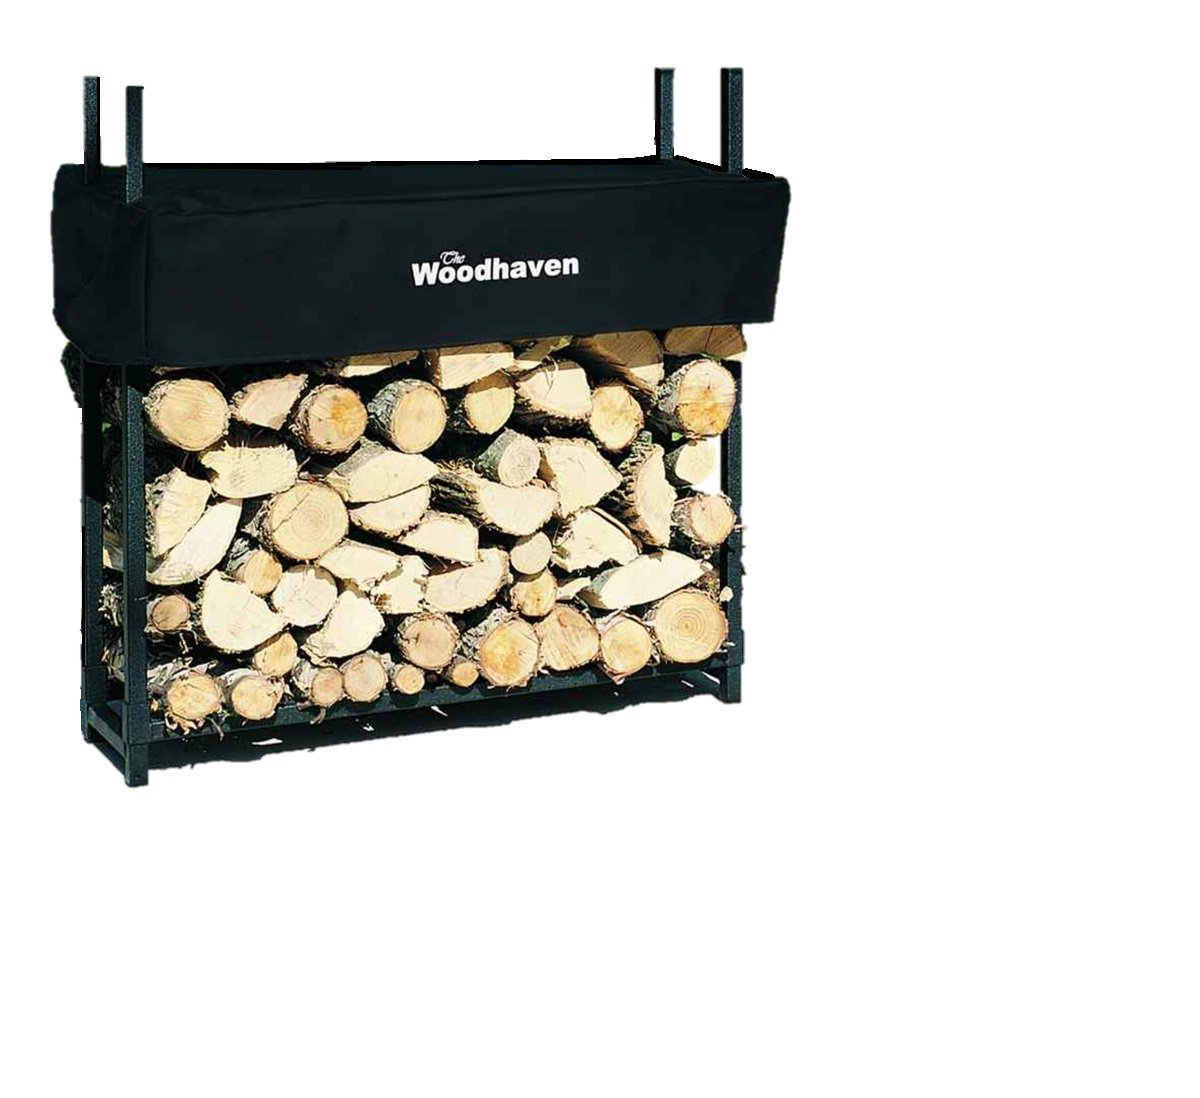 Woodhaven The 3 Foot Firewood Log Rack with Cover by Woodhaven